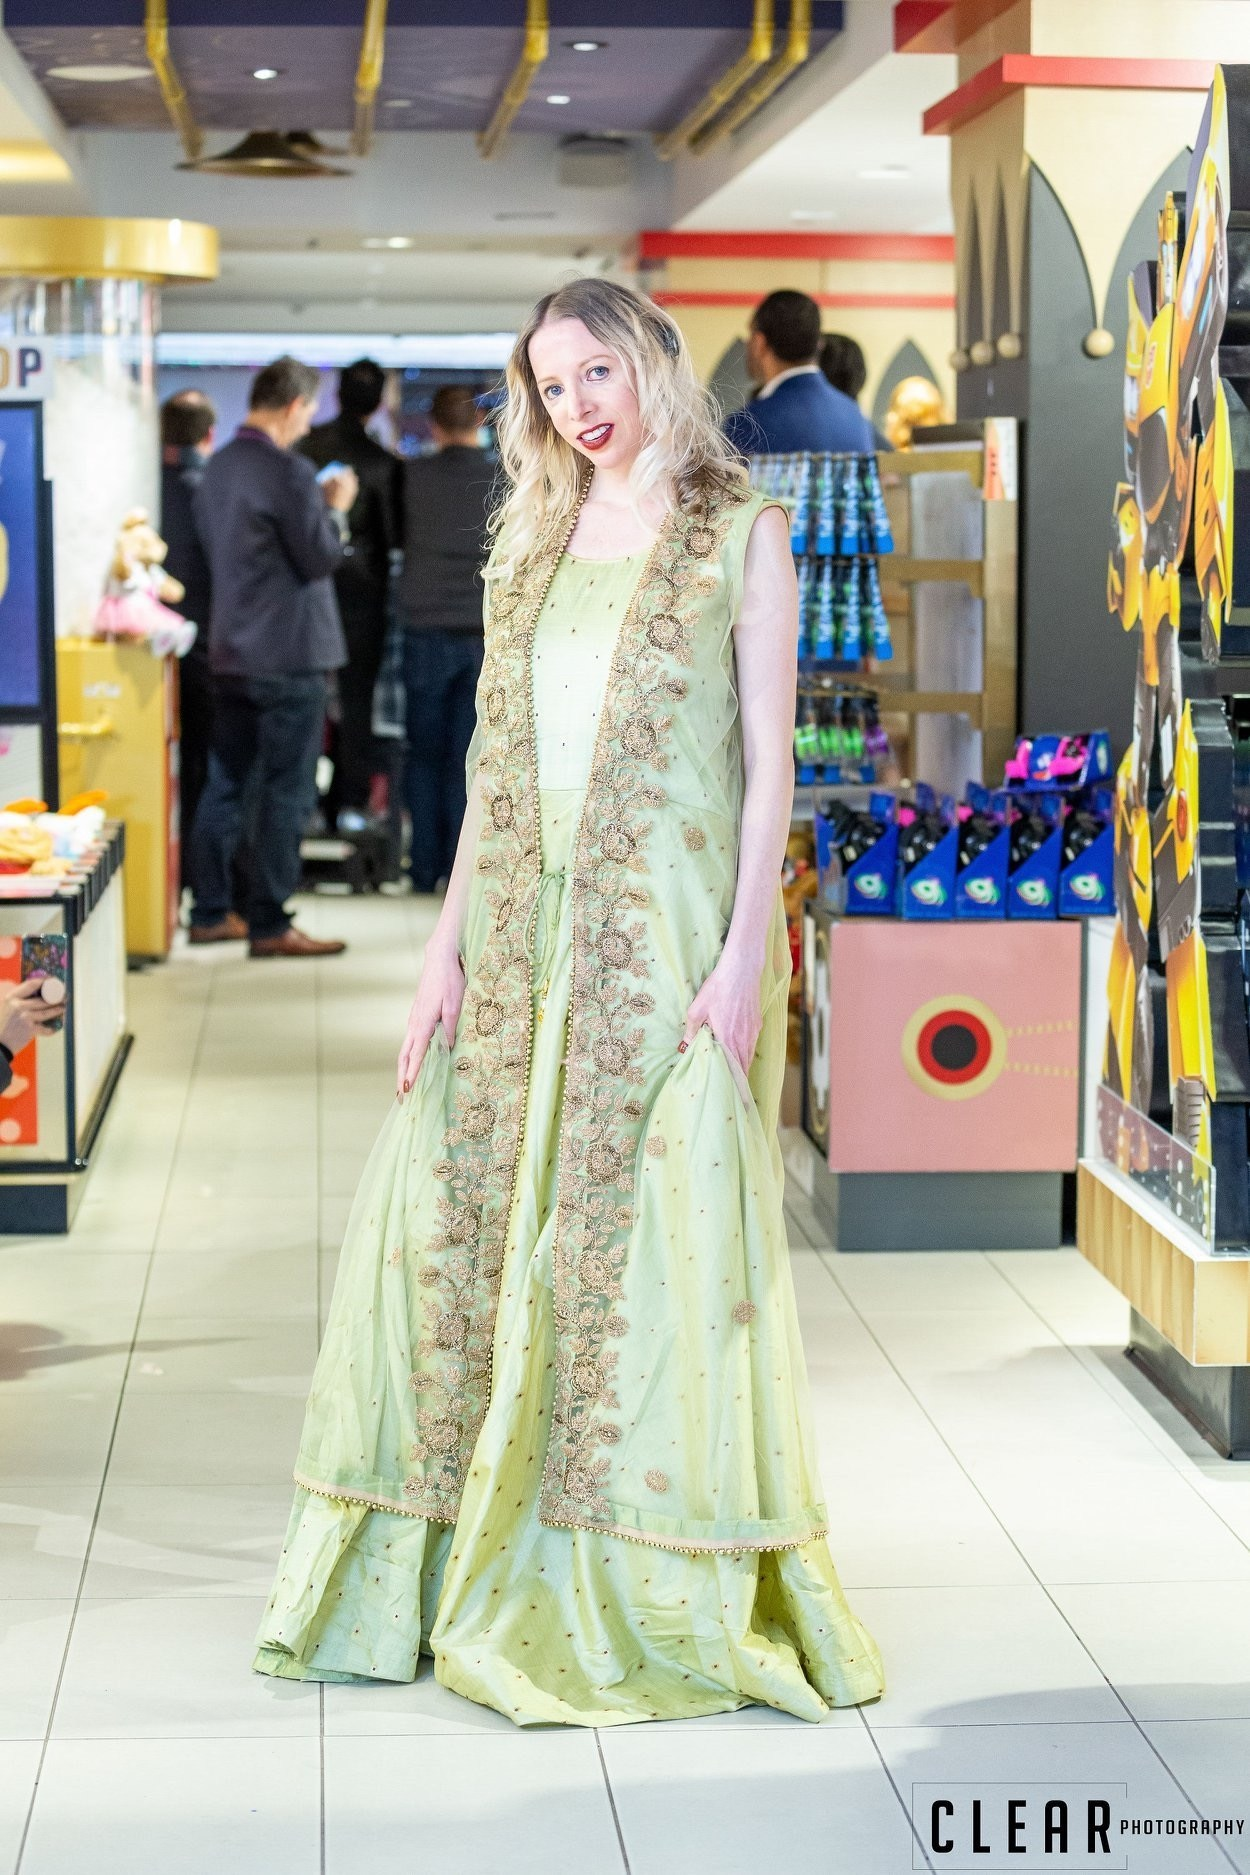 Cynthia Murphy, Treacher Collins Syndrome featuring Prashant Goyal Heritage India Fashion Designs Trends